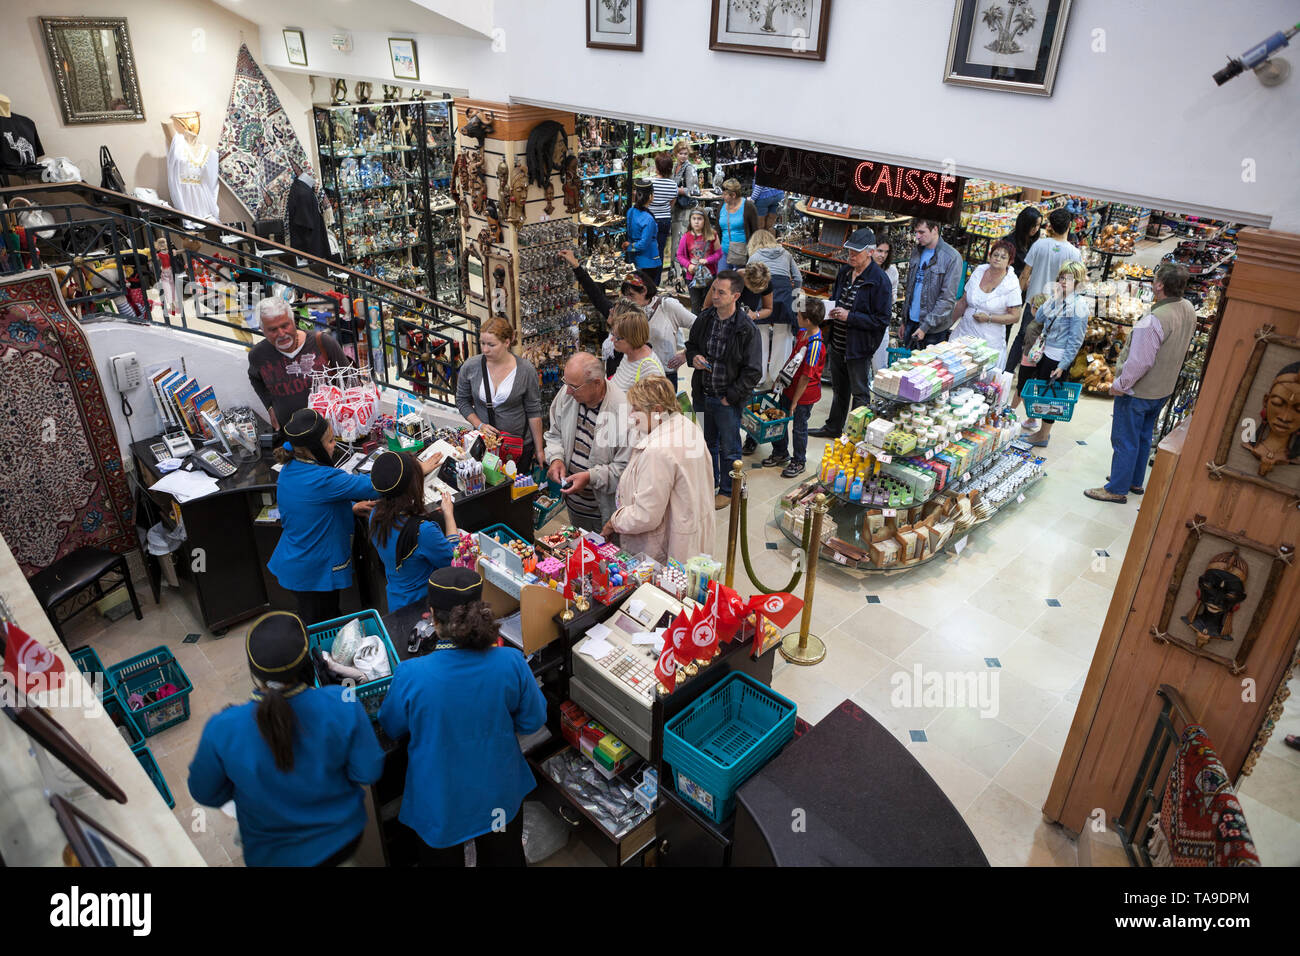 SOUSSE, TUNISIA-CIRCA MAY, 2012: Shopping area and checkout lane are in Yasmina souvenir center. Interior of large giftshop with lot of advertising gi - Stock Image